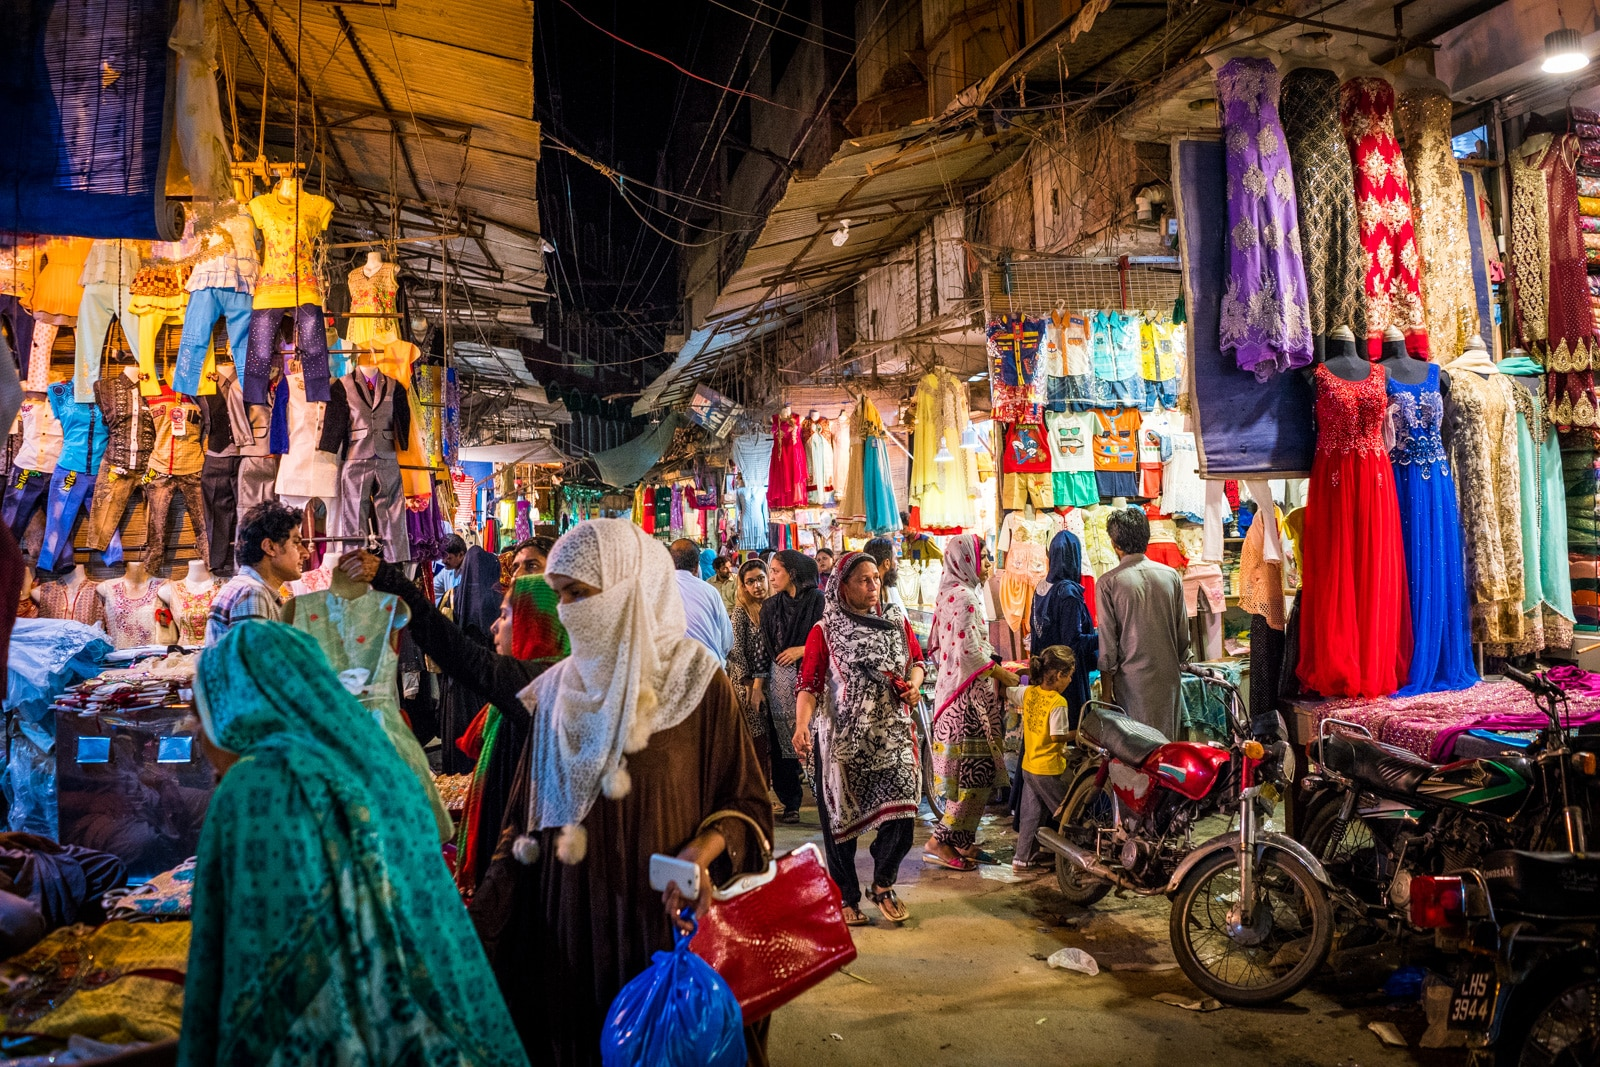 Getting a Pakistan visa extension in Lahore, Pakistan - Market near Wazir Khan Mosque in Lahore's Walled City - Lost With Purpose travel blog